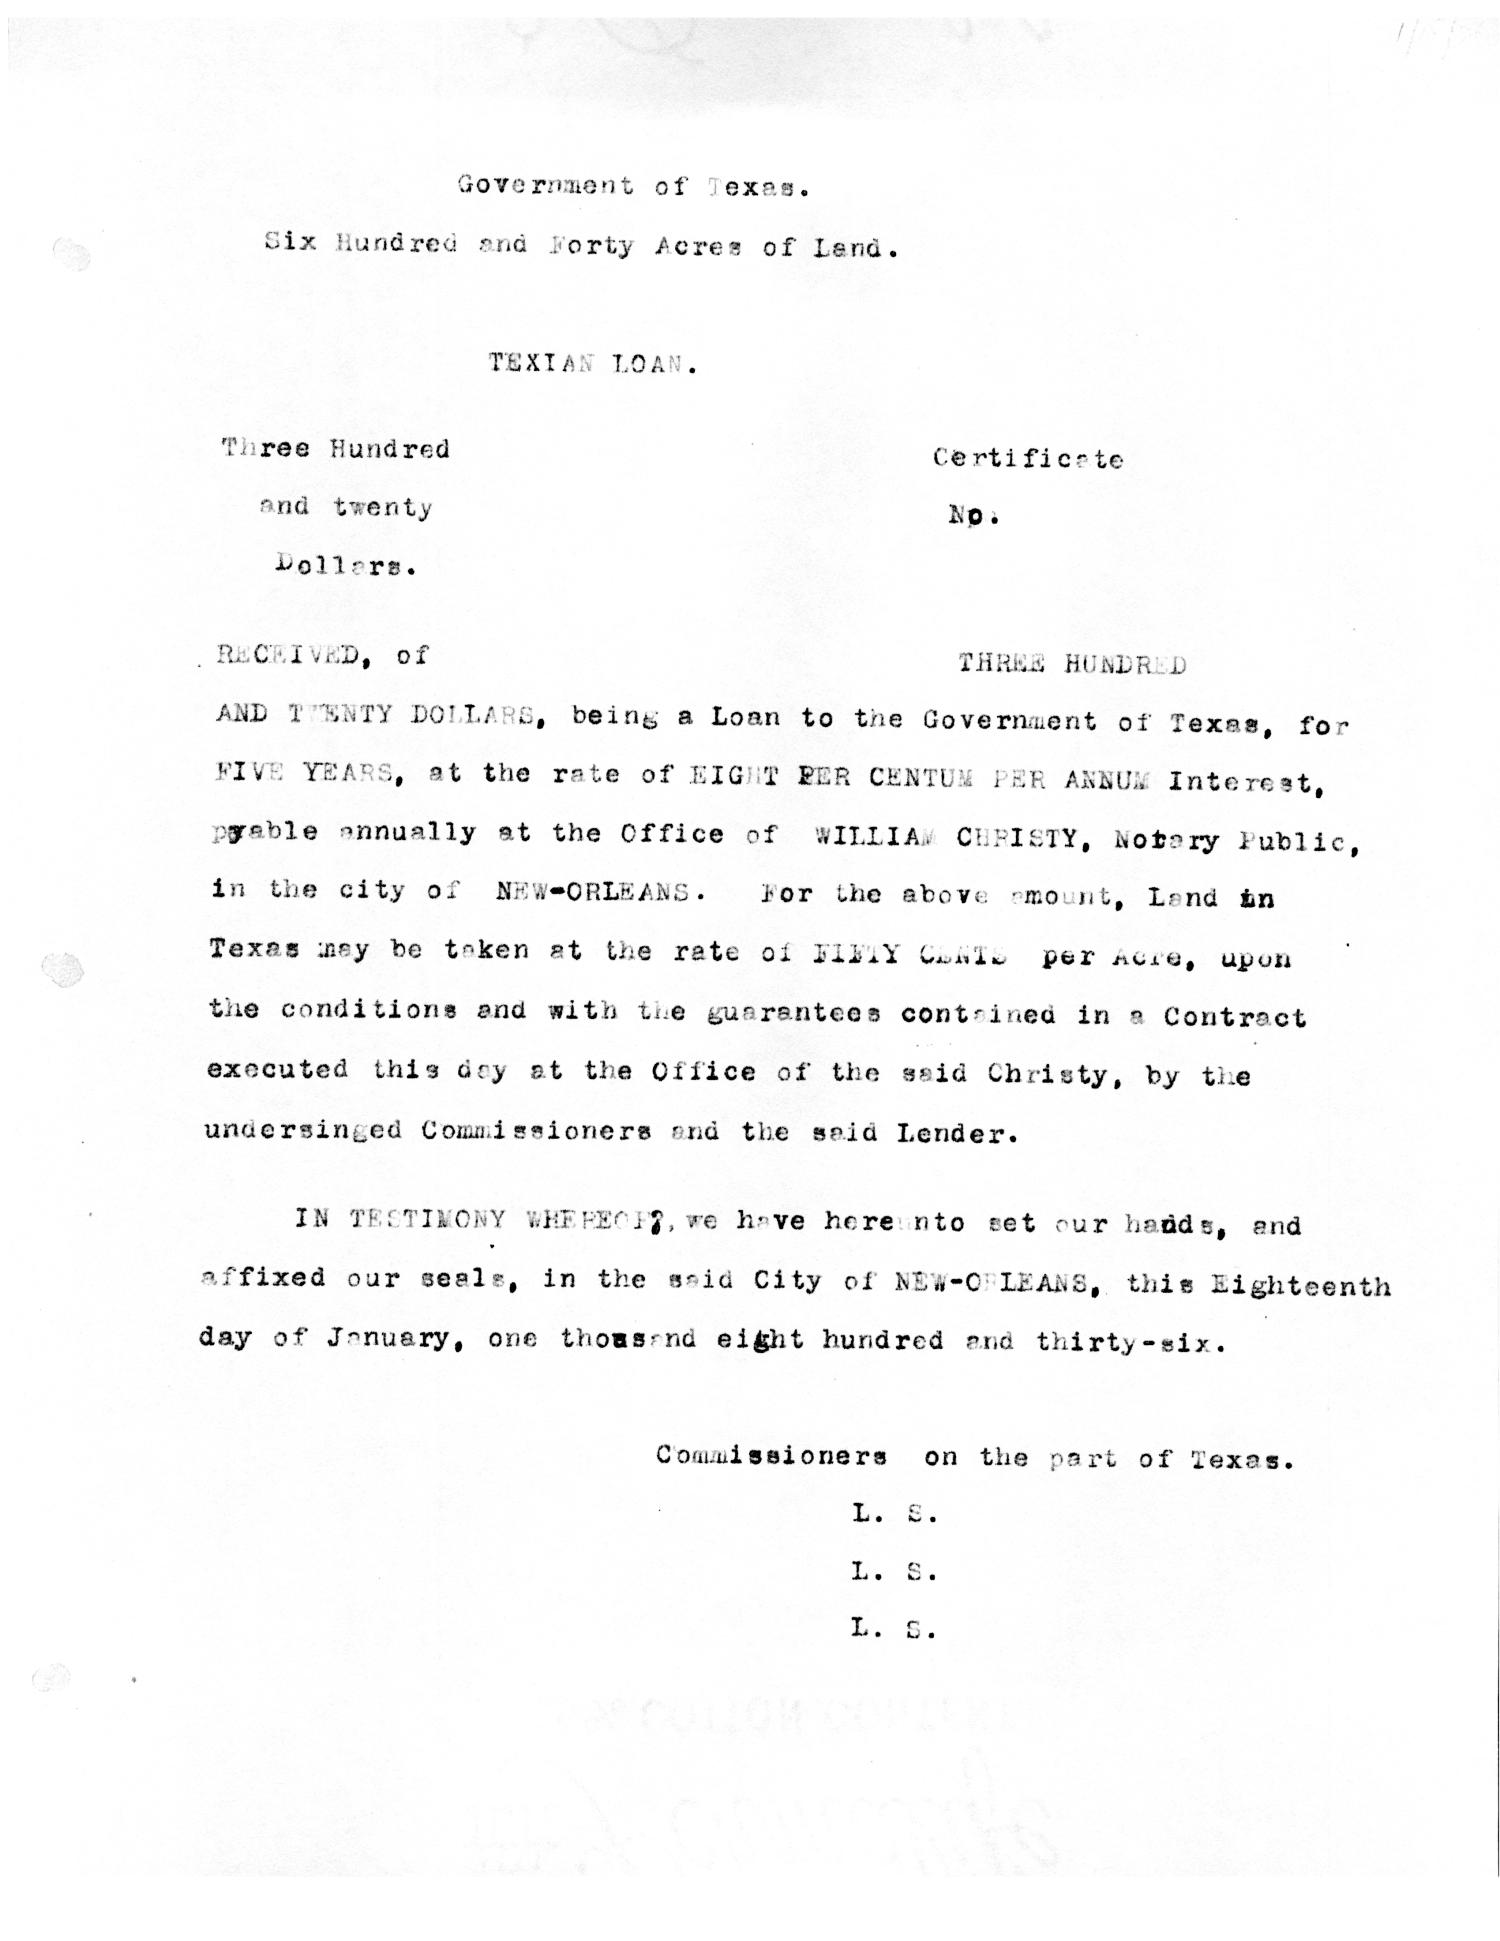 [Transcript of promissory note for the Government of Texas ...